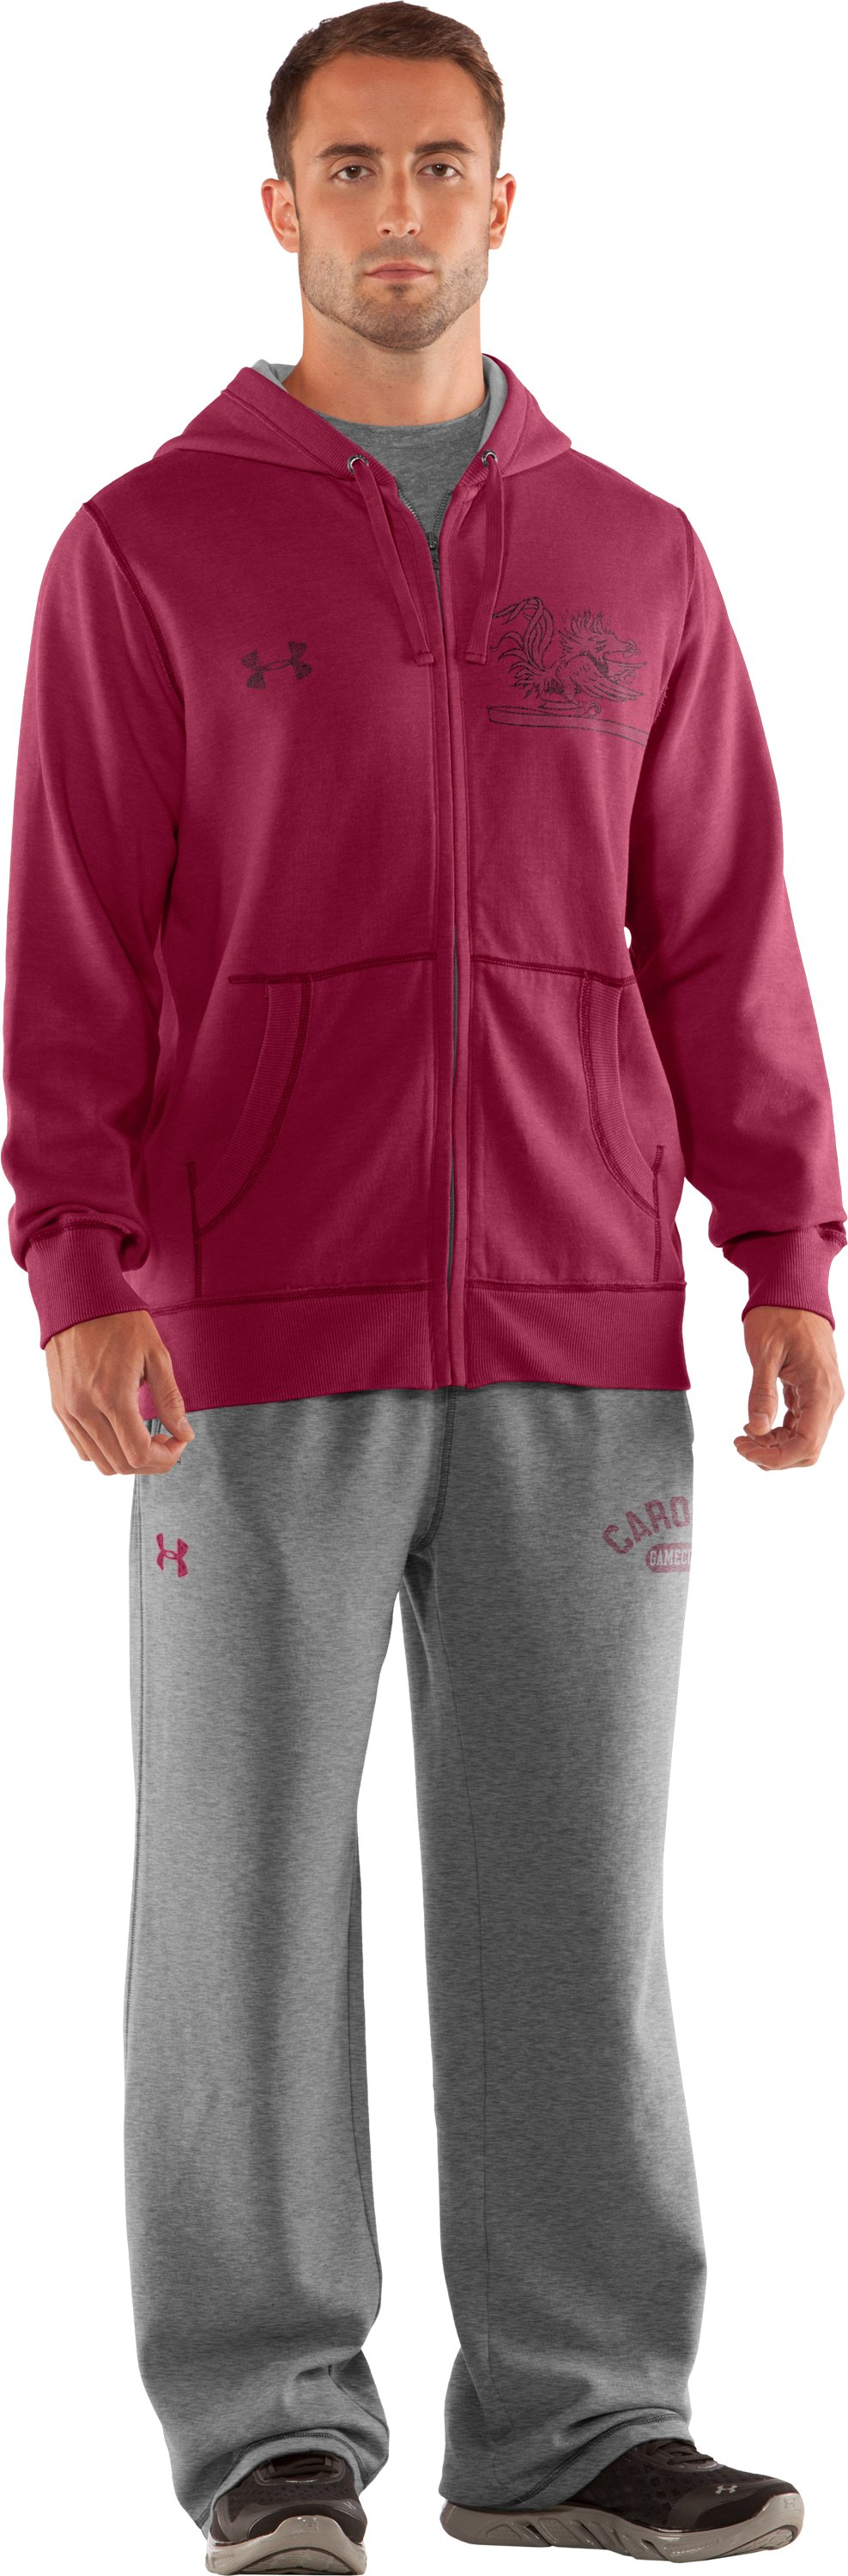 Men's South Carolina Under Armour® Legacy Hoodie, Cardinal, Front